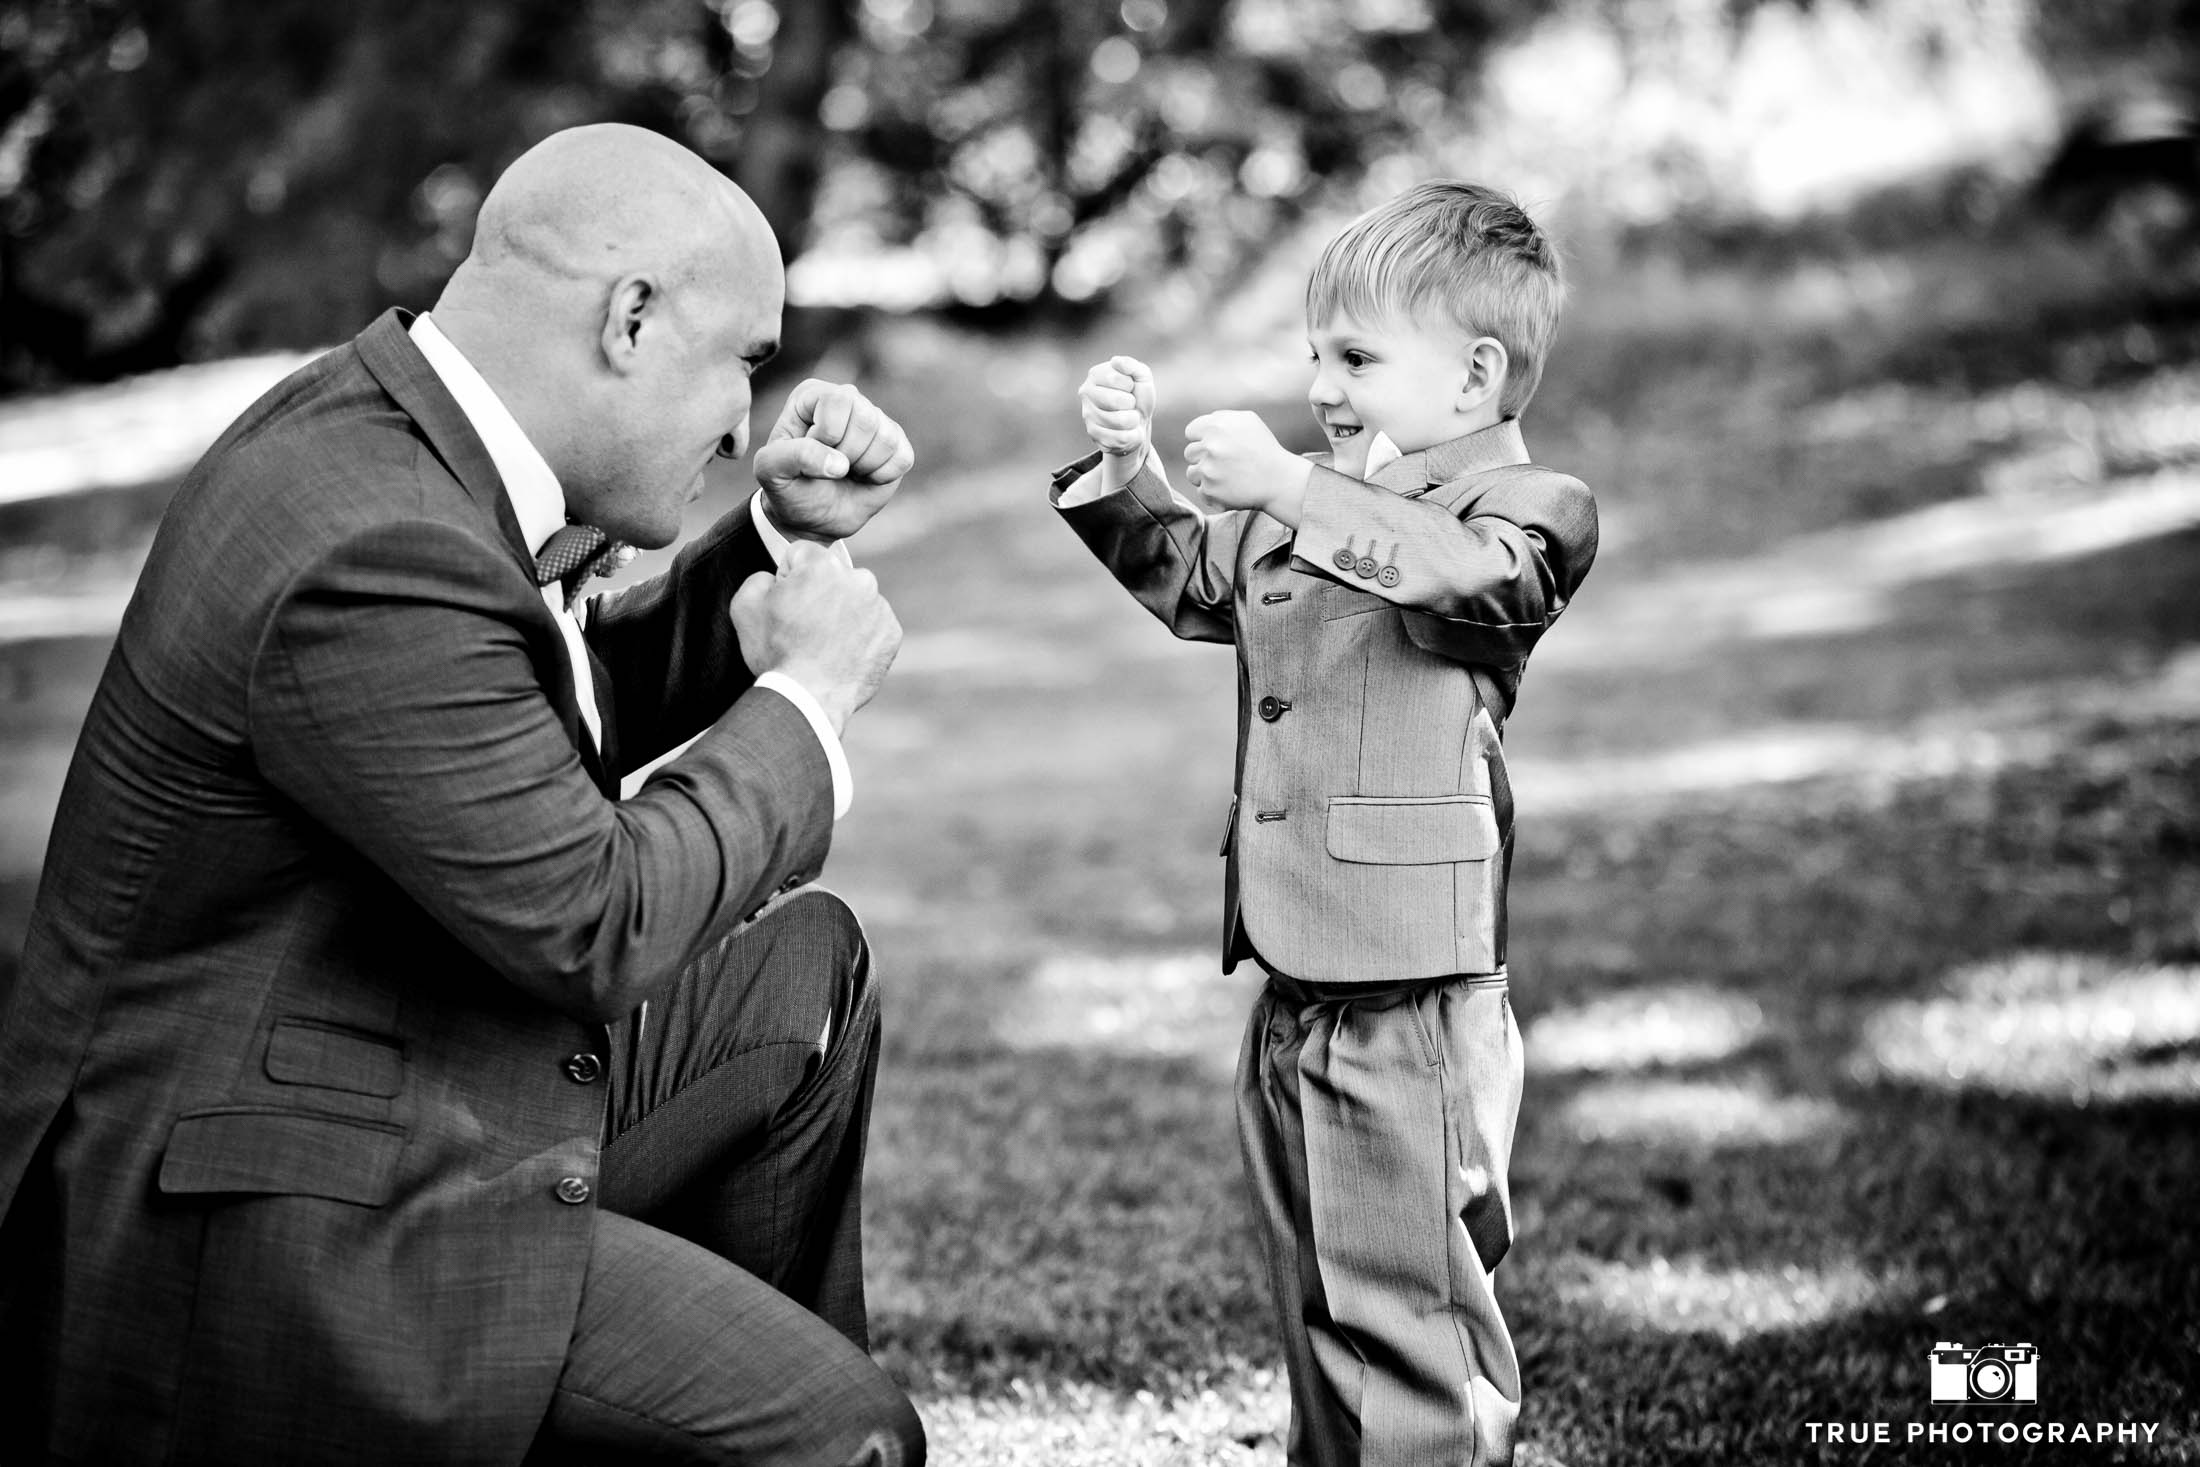 Cute moment with Groom play-fighting with young boy before wedding ceremony